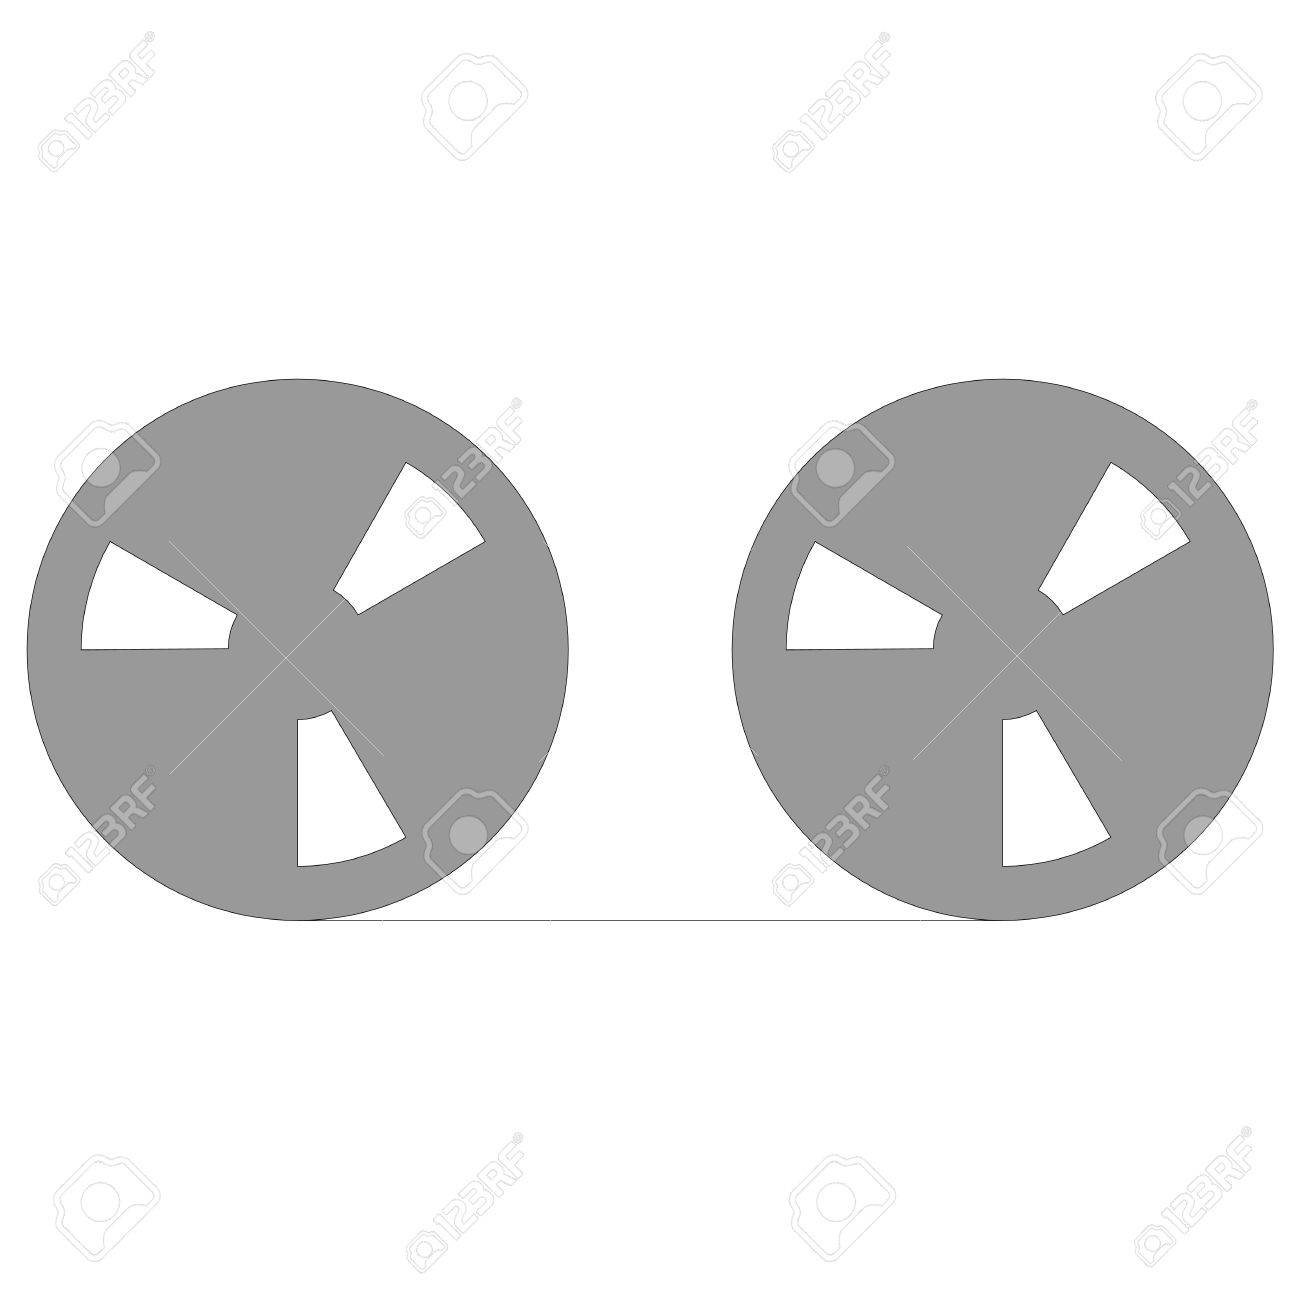 Tape Reel Symbol For Computer Data Storage Or Audio Recording Stock